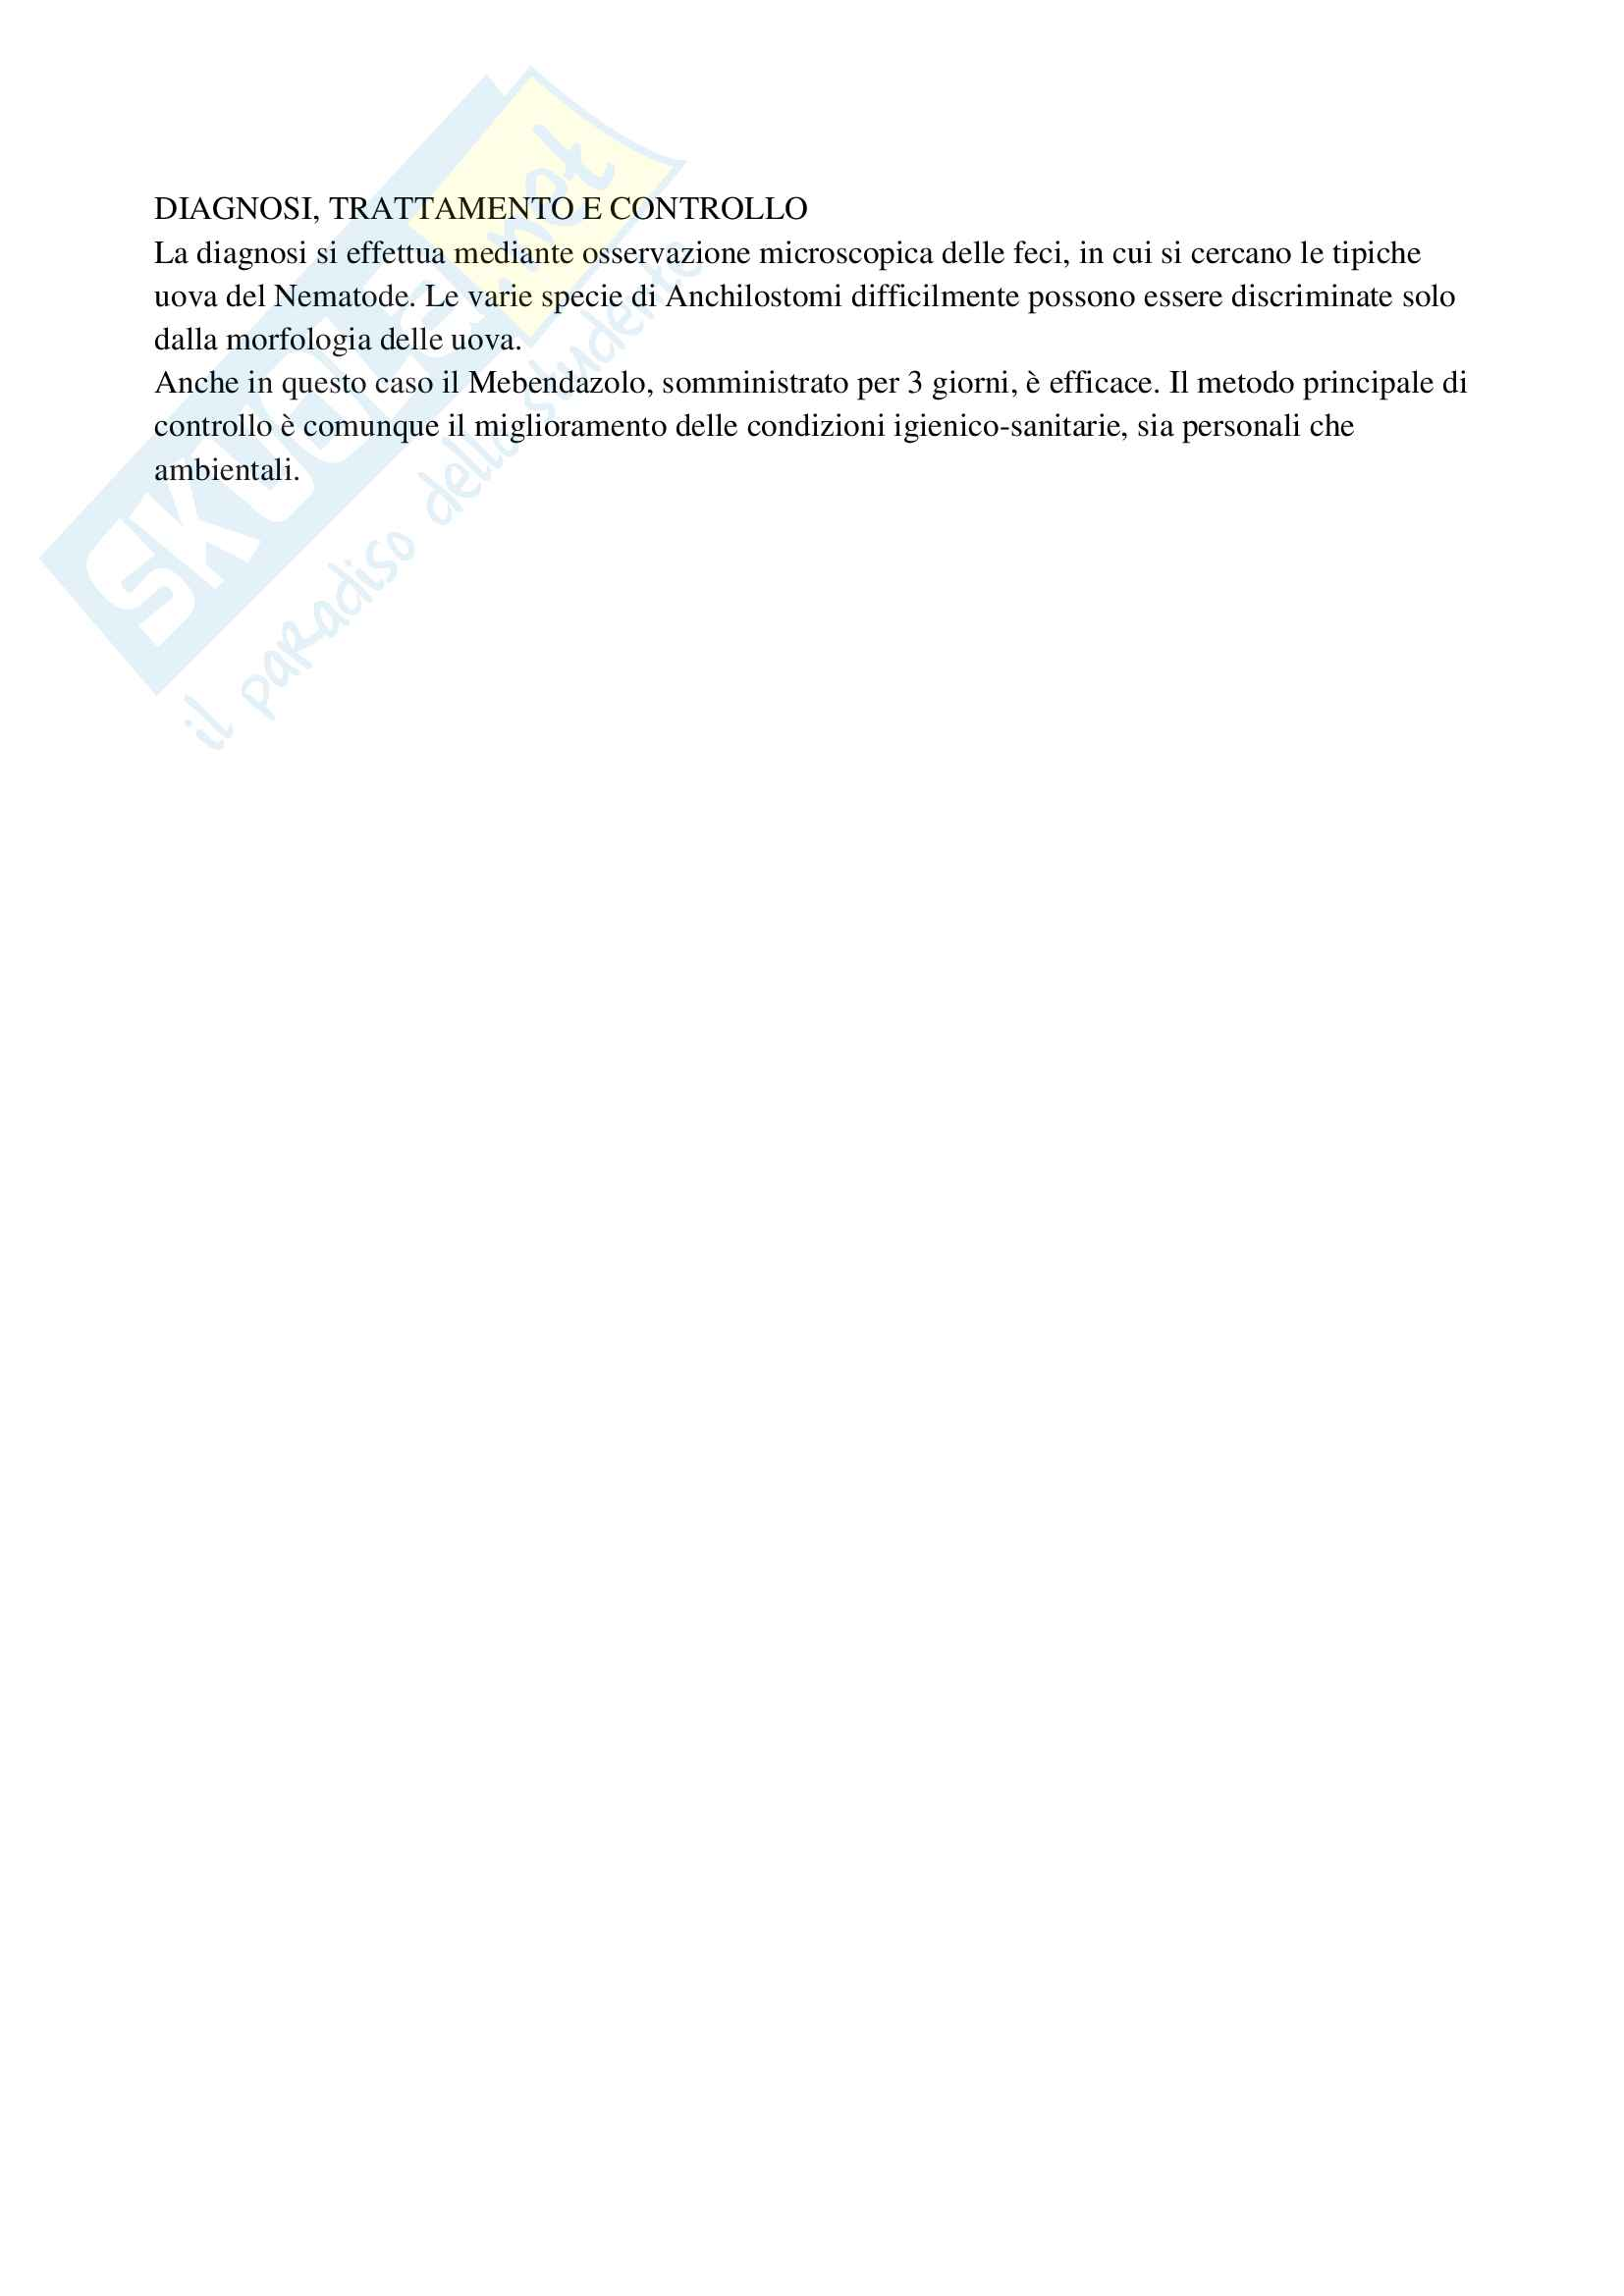 Parassitologia Pag. 61